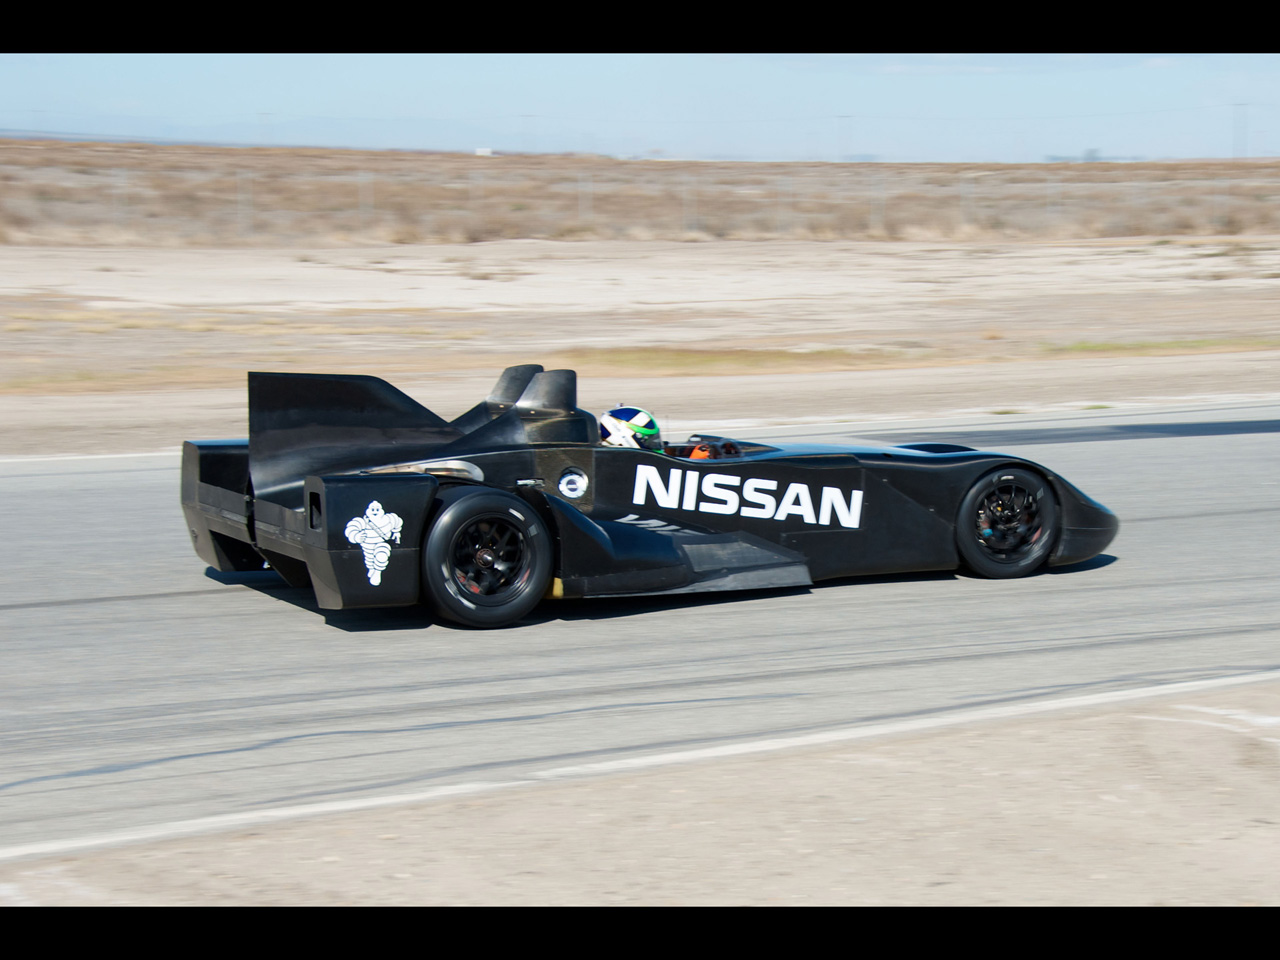 Nissan DeltaWing Le Mans Race Car   Moving 2   1280x960   Wallpaper 1280x960